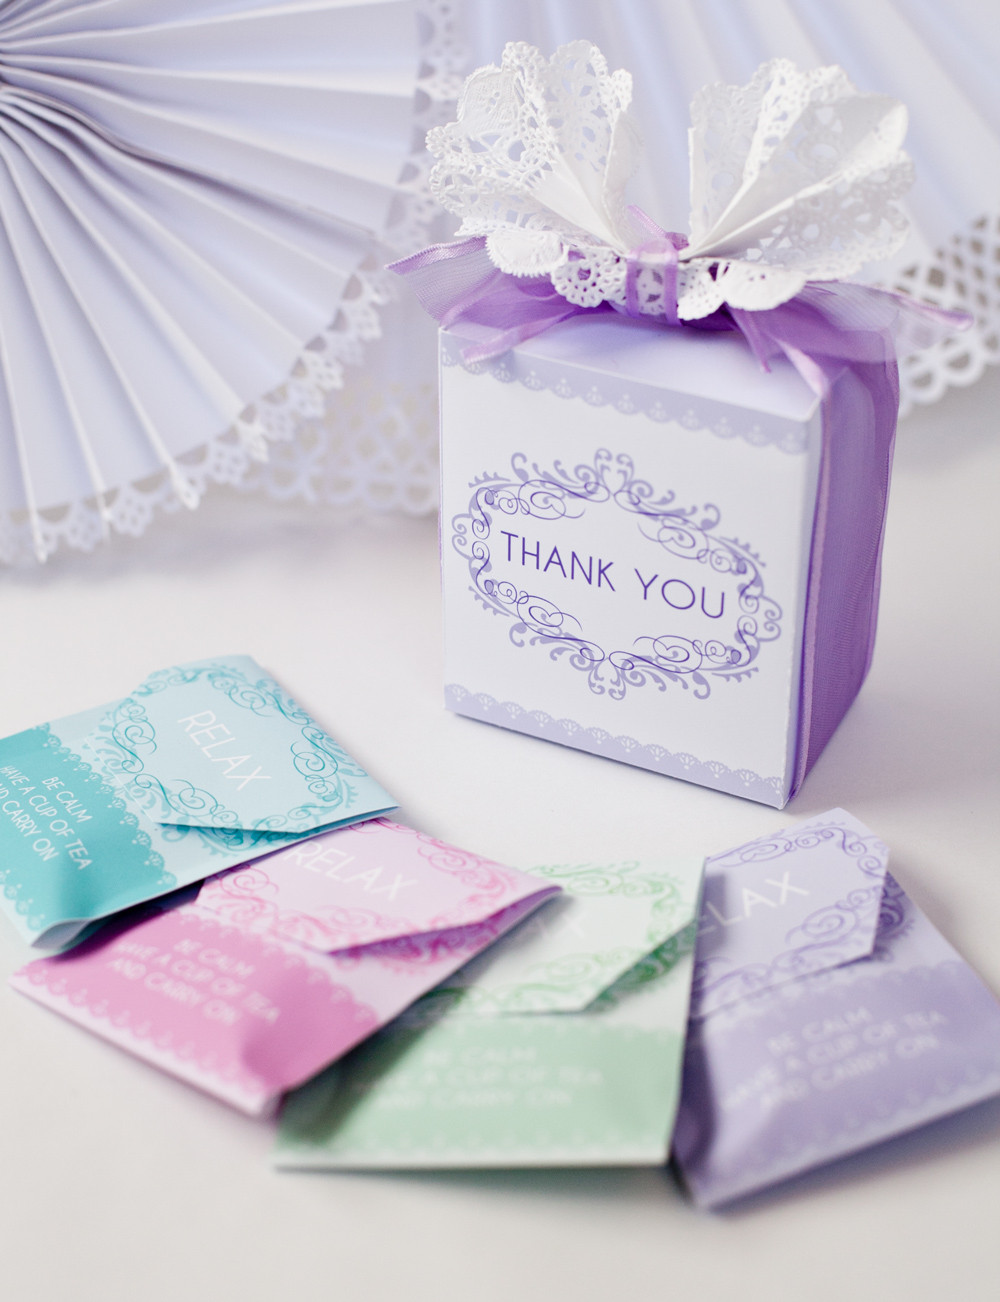 Best ideas about DIY Party Favors . Save or Pin DIY Baby Shower Tea Party Favor Free Printable Now.